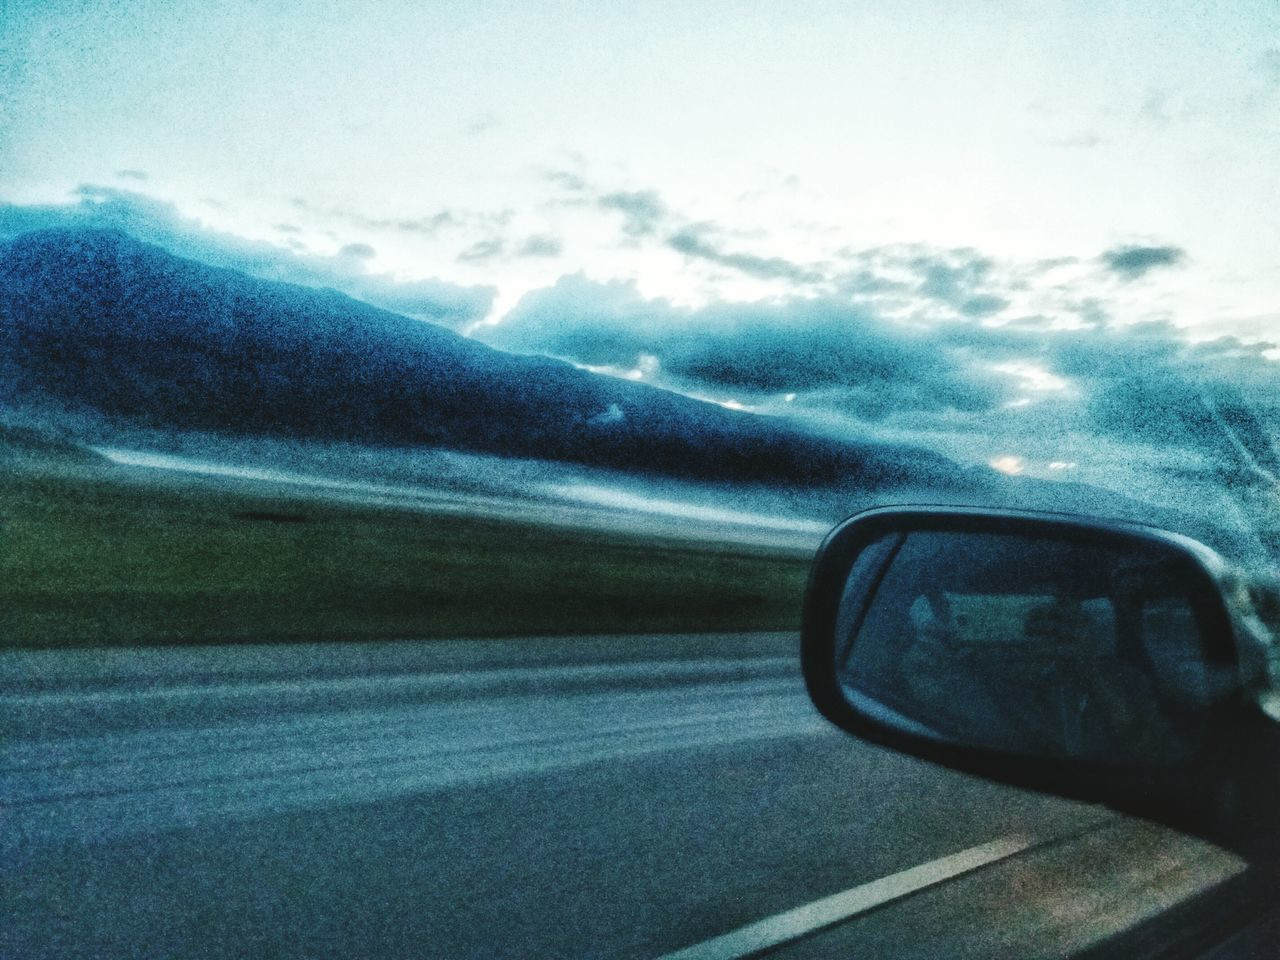 transportation, car, vehicle interior, sky, mode of transport, cloud - sky, road, car interior, side-view mirror, land vehicle, nature, day, window, no people, landscape, scenics, beauty in nature, outdoors, close-up